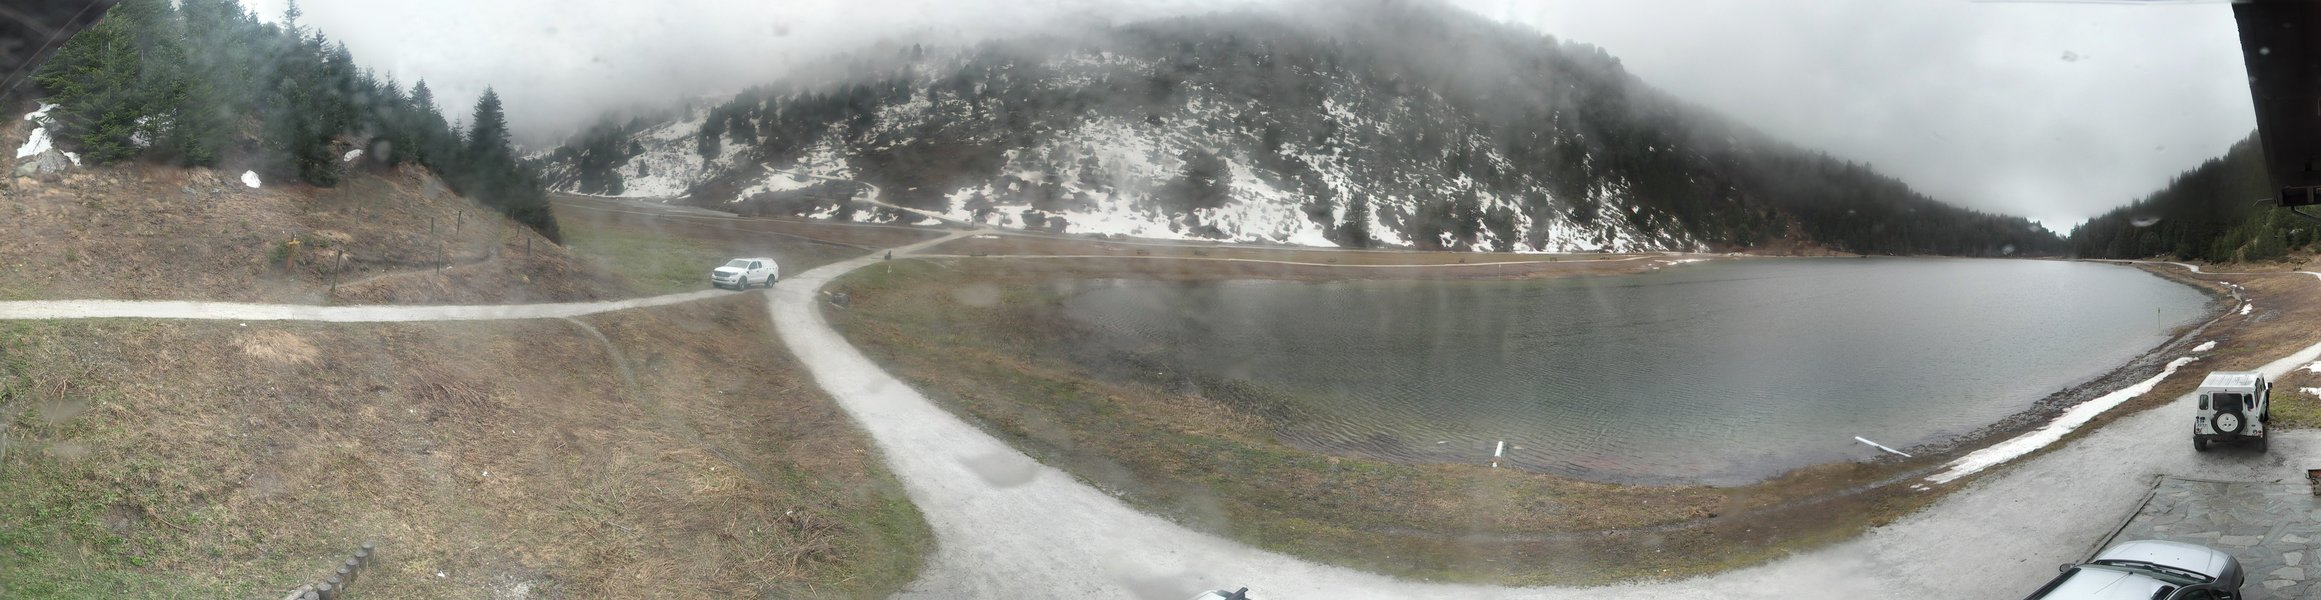 Meribel webcam Lac de Tueda